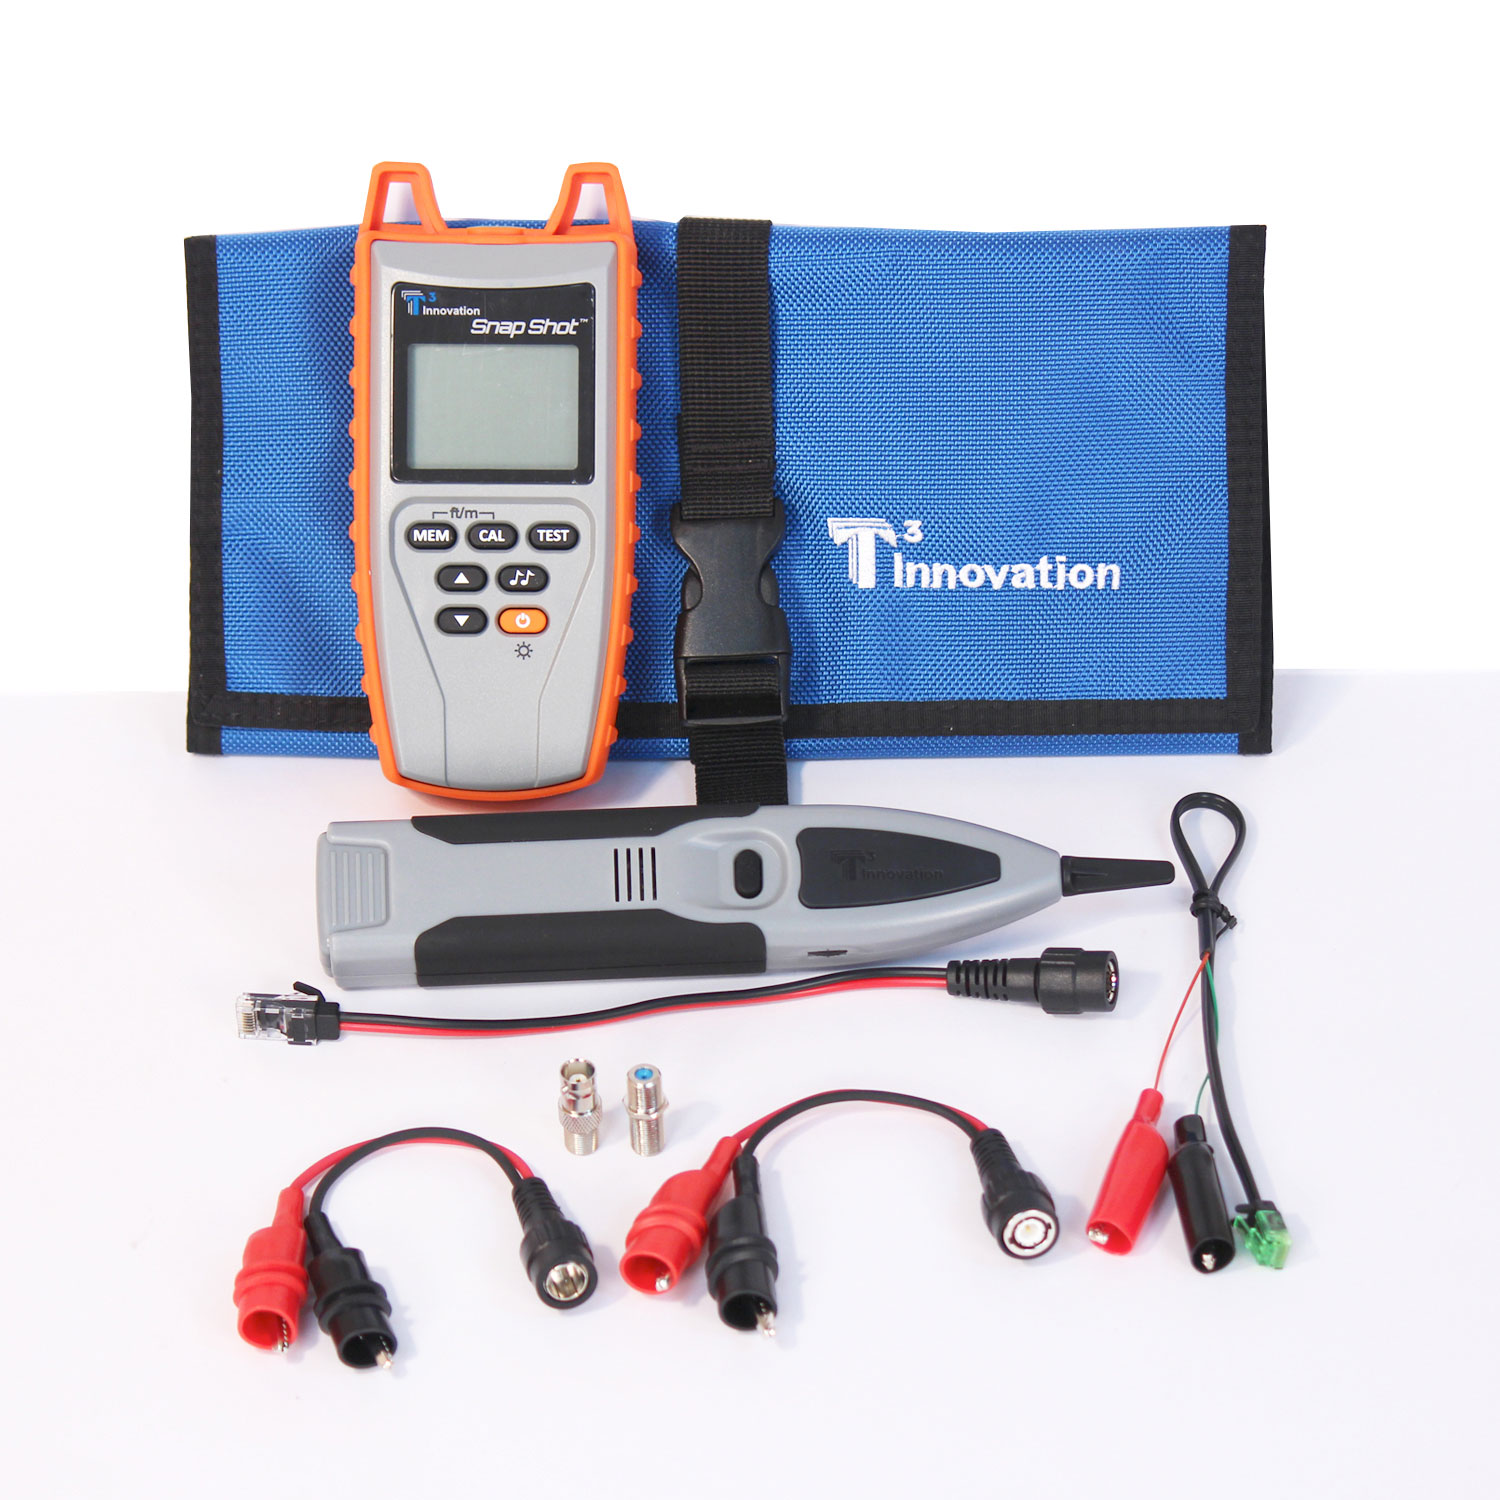 Fault Finder And Length Measurement Tdr Snap Shot T3 Innovation Short Circuit Tester On Find A Guide With Wiring Diagram Ssk250